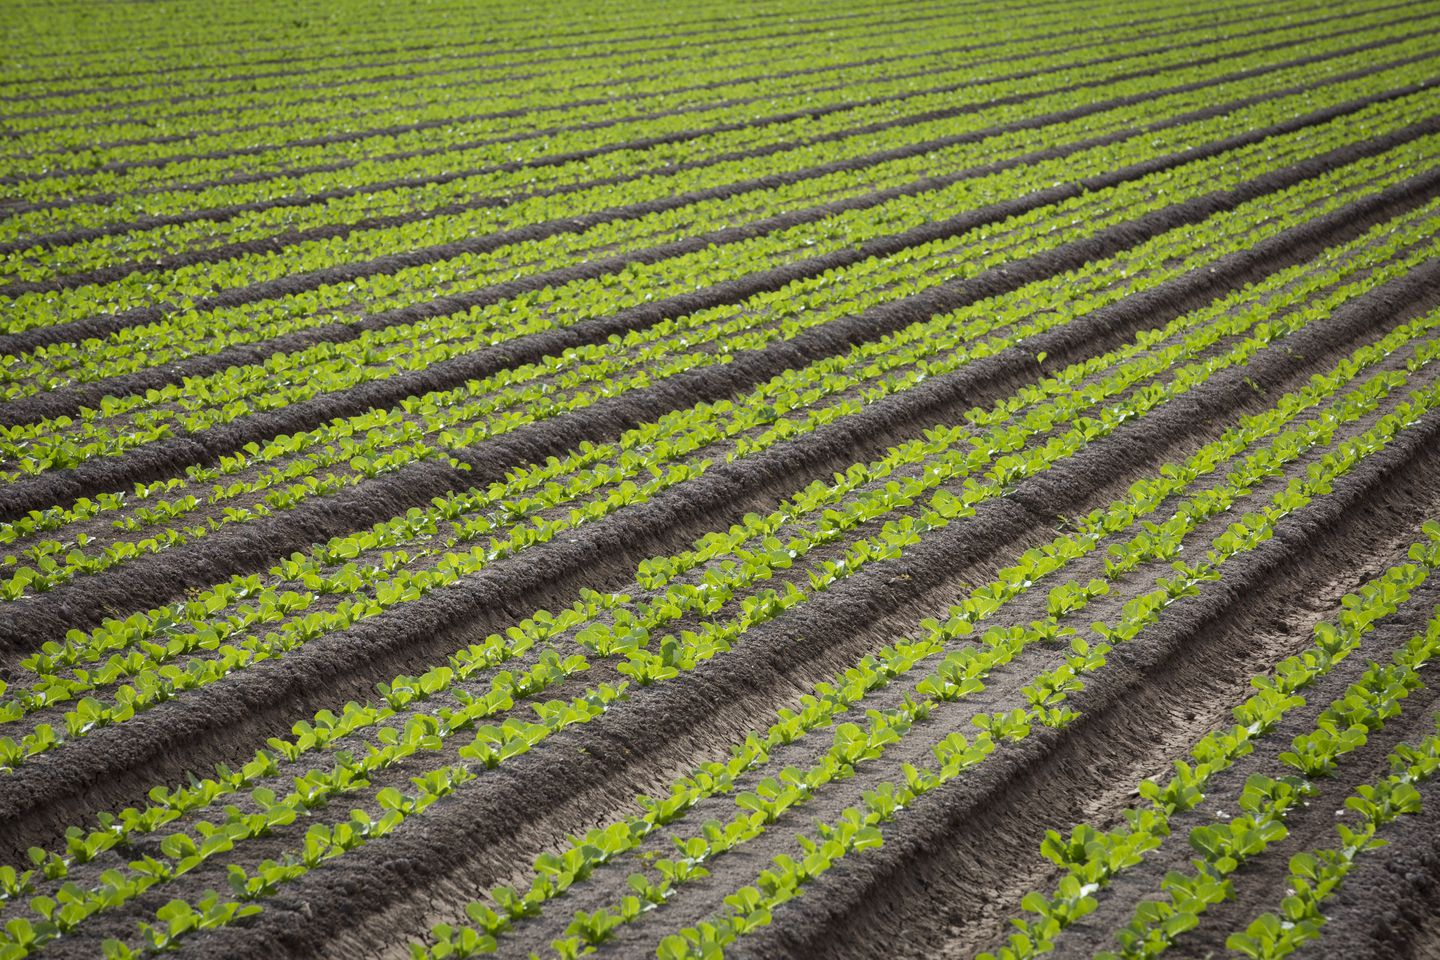 Romaine lettuce grew near Yuma, Ariz., one of the nation's leading producers of leafy green vegetables. At least one recent E. coli outbreak has been traced to farms in the region.